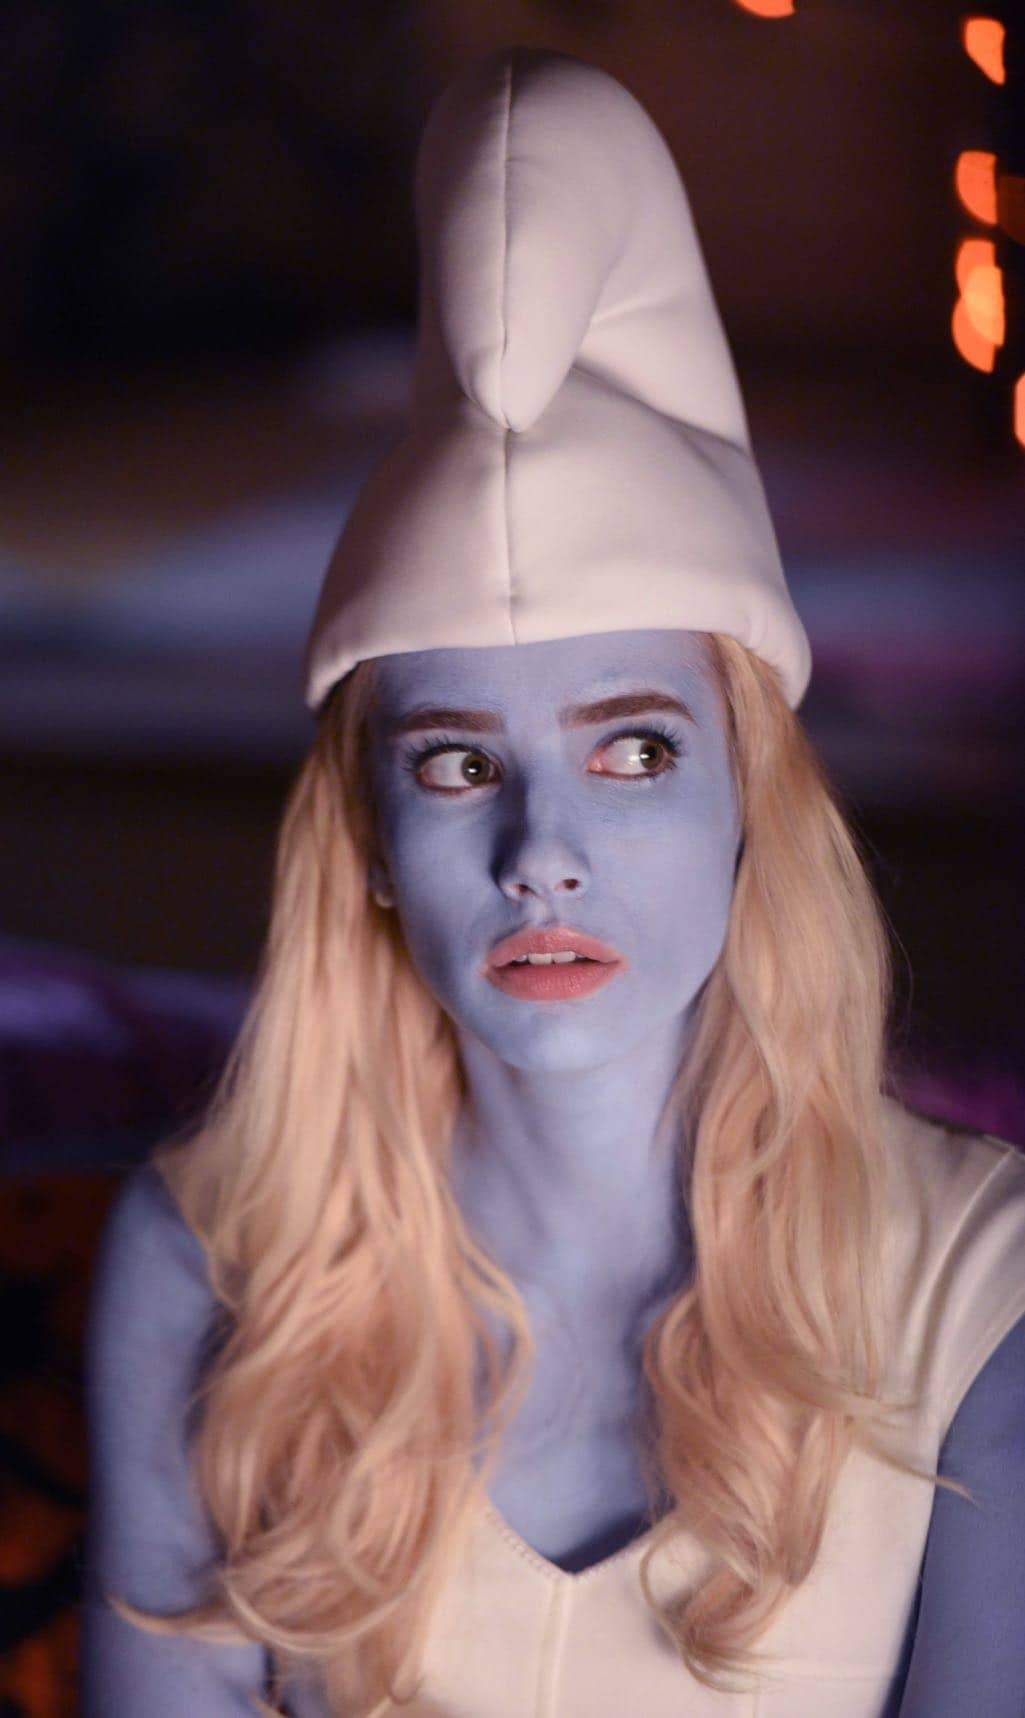 """SCREAM QUEENS: Emma Roberts in the all-new """"Halloween Blues"""" episode of SCREAM QUEENS airing Tuesday, Oct. 18 (9:01-10:00 PM ET/PT) on FOX. Cr: Michael Becker / FOX. © 2016 FOX Broadcasting Co."""